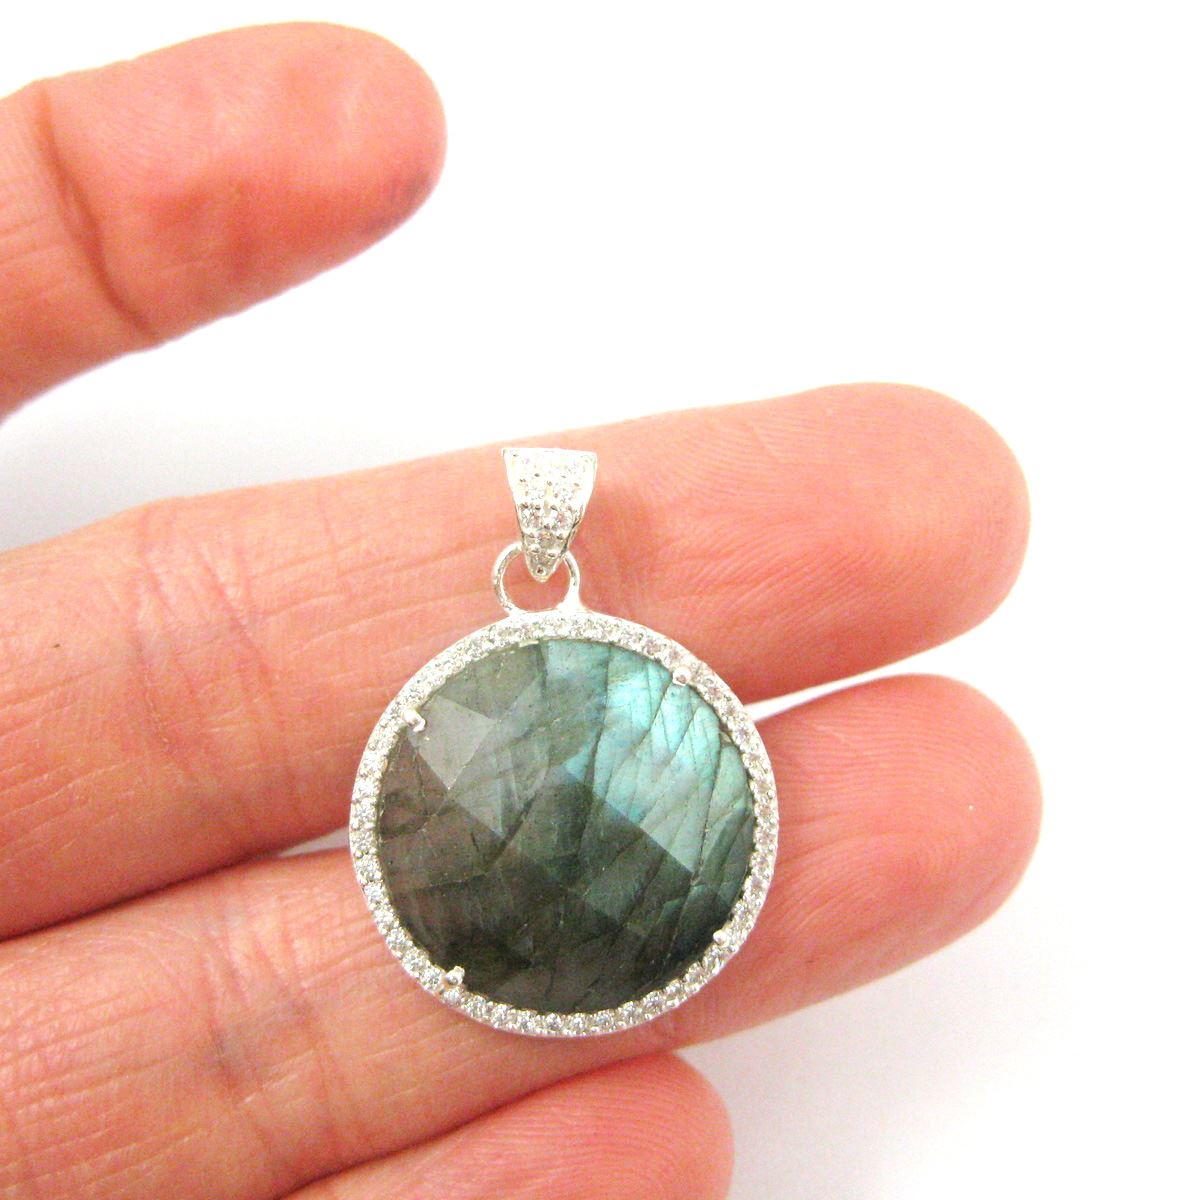 Sterling Silver Pave Bezel Gemstone Pendant - Cubic Zirconia Pave Setting -  Round Faceted Stone-Labradorite- 21mm